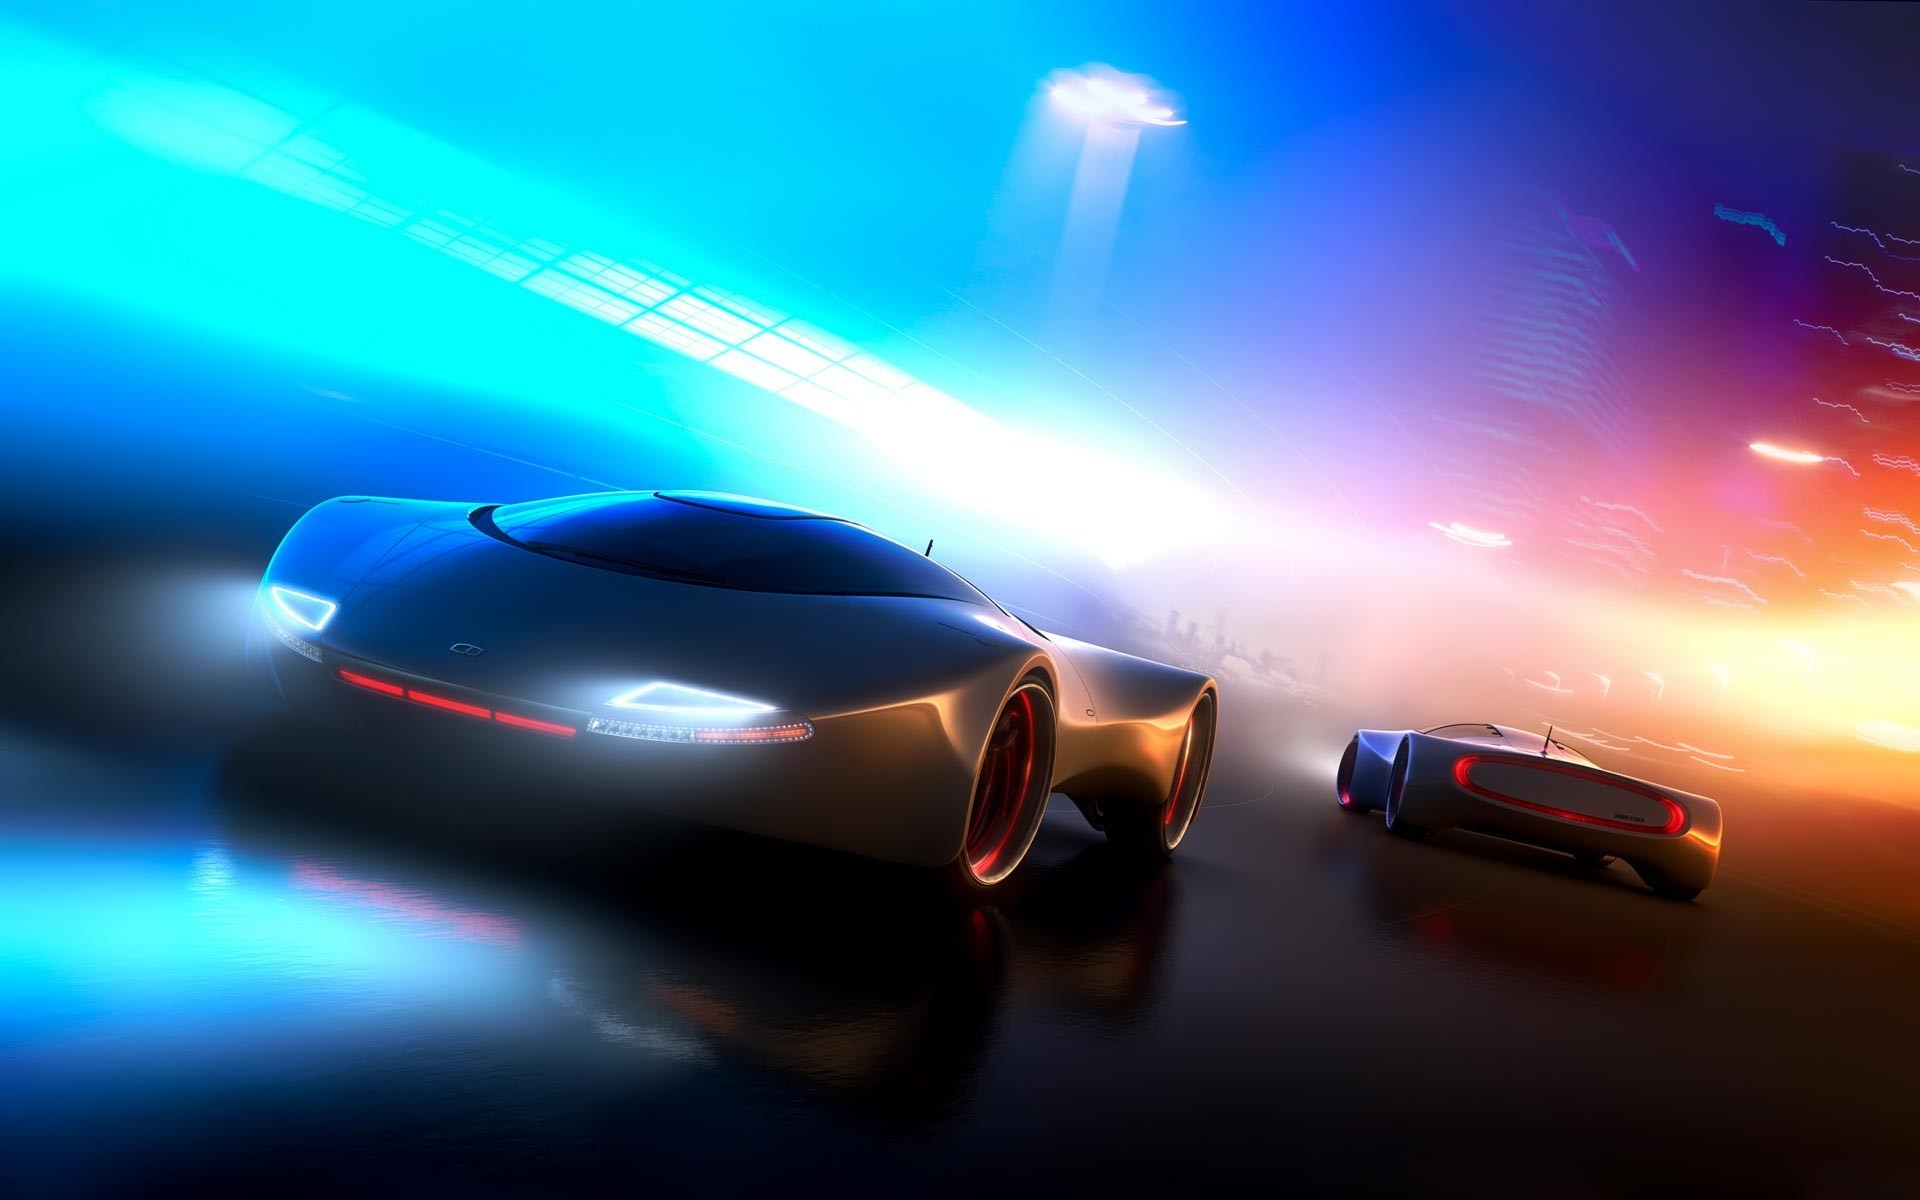 1920x1200 Car Live Wallpaper For Pc